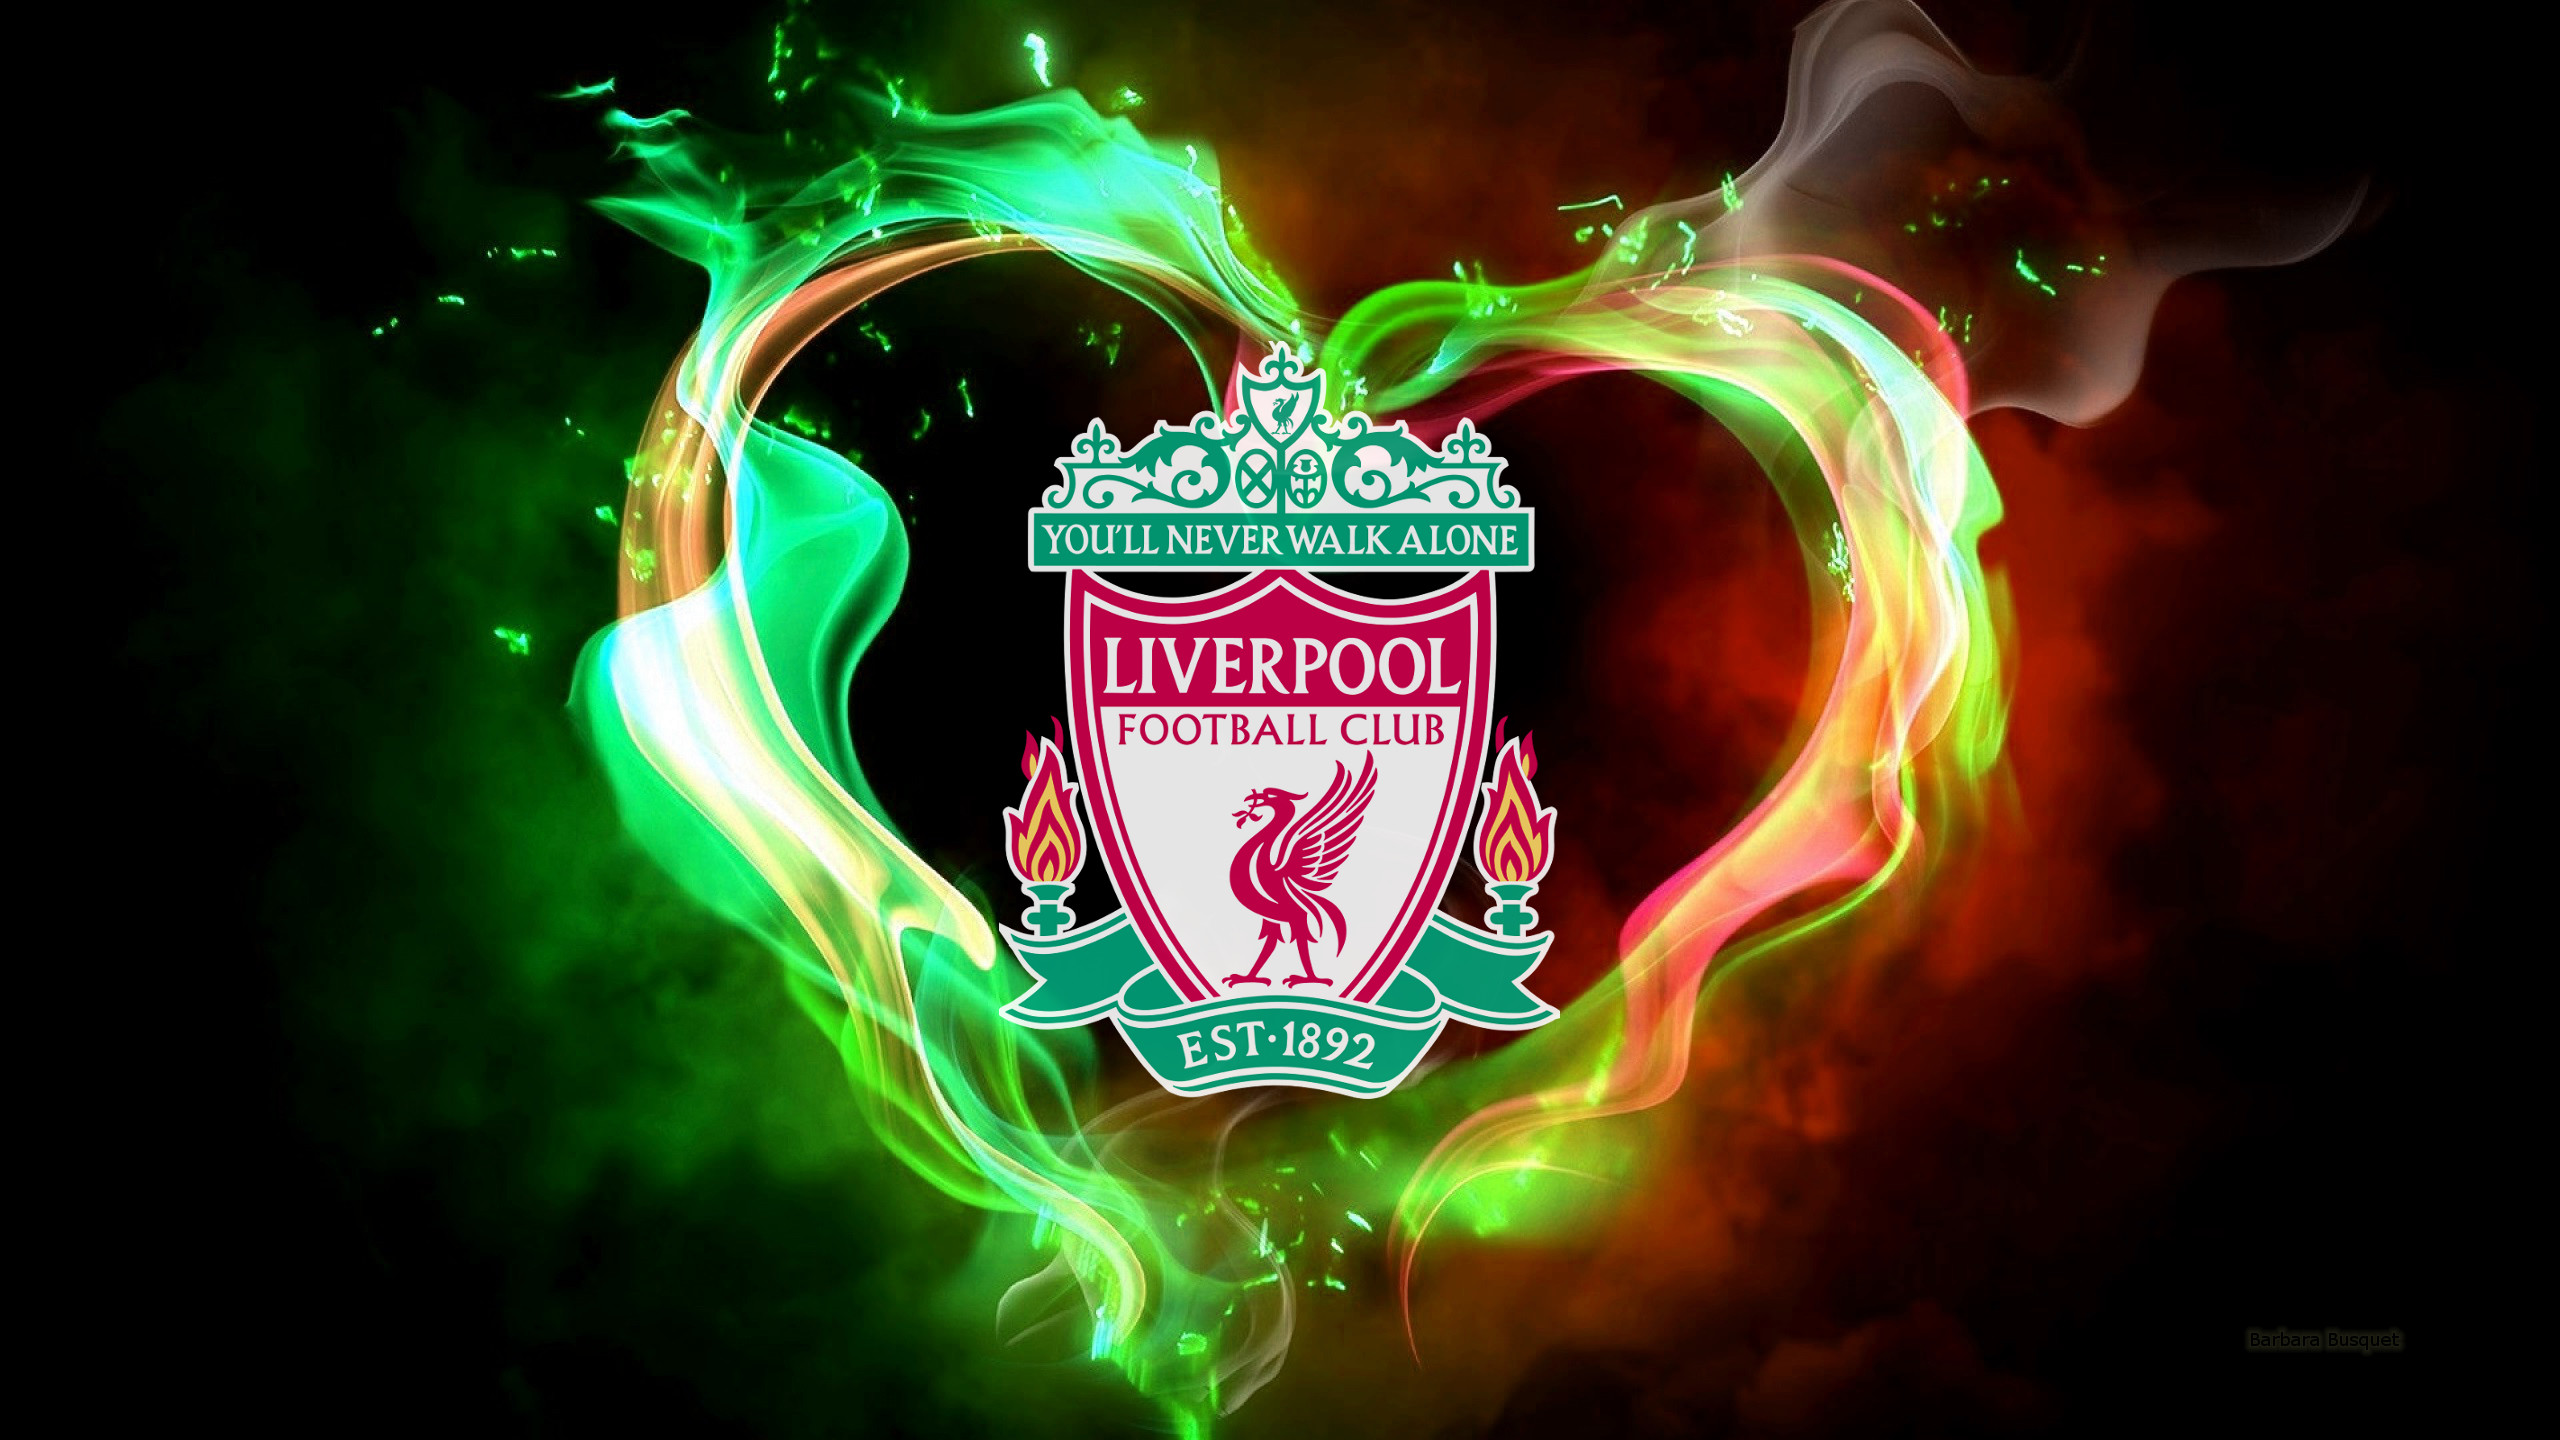 Liverpool Fc Logo Wallpapers Top Free Liverpool Fc Logo Backgrounds Wallpaperaccess